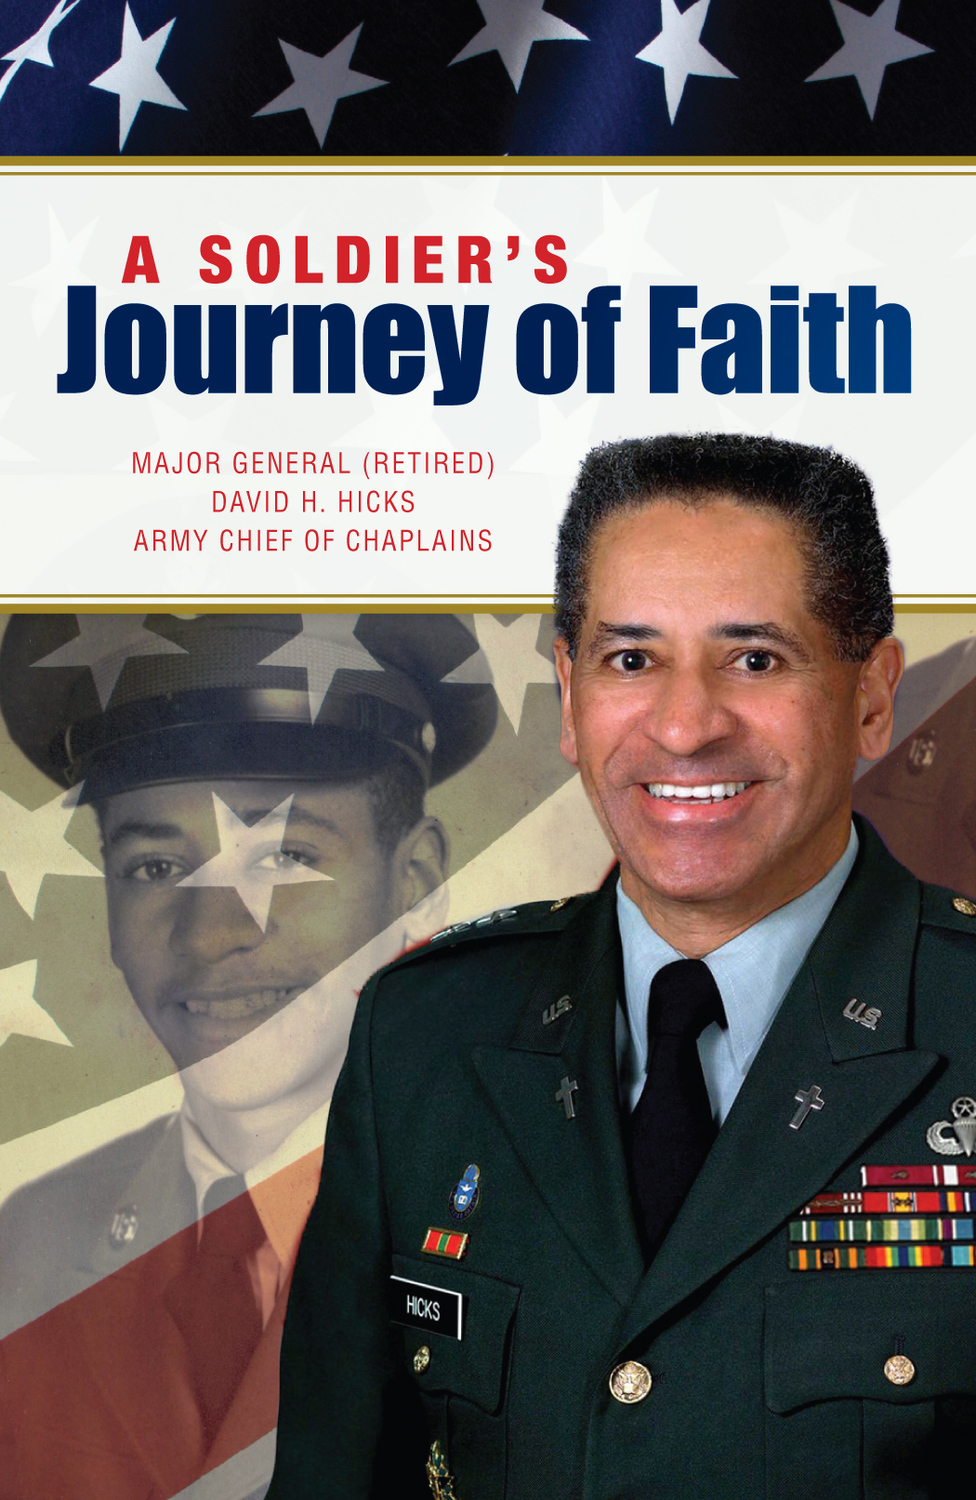 A Soldier's Journey of Faith